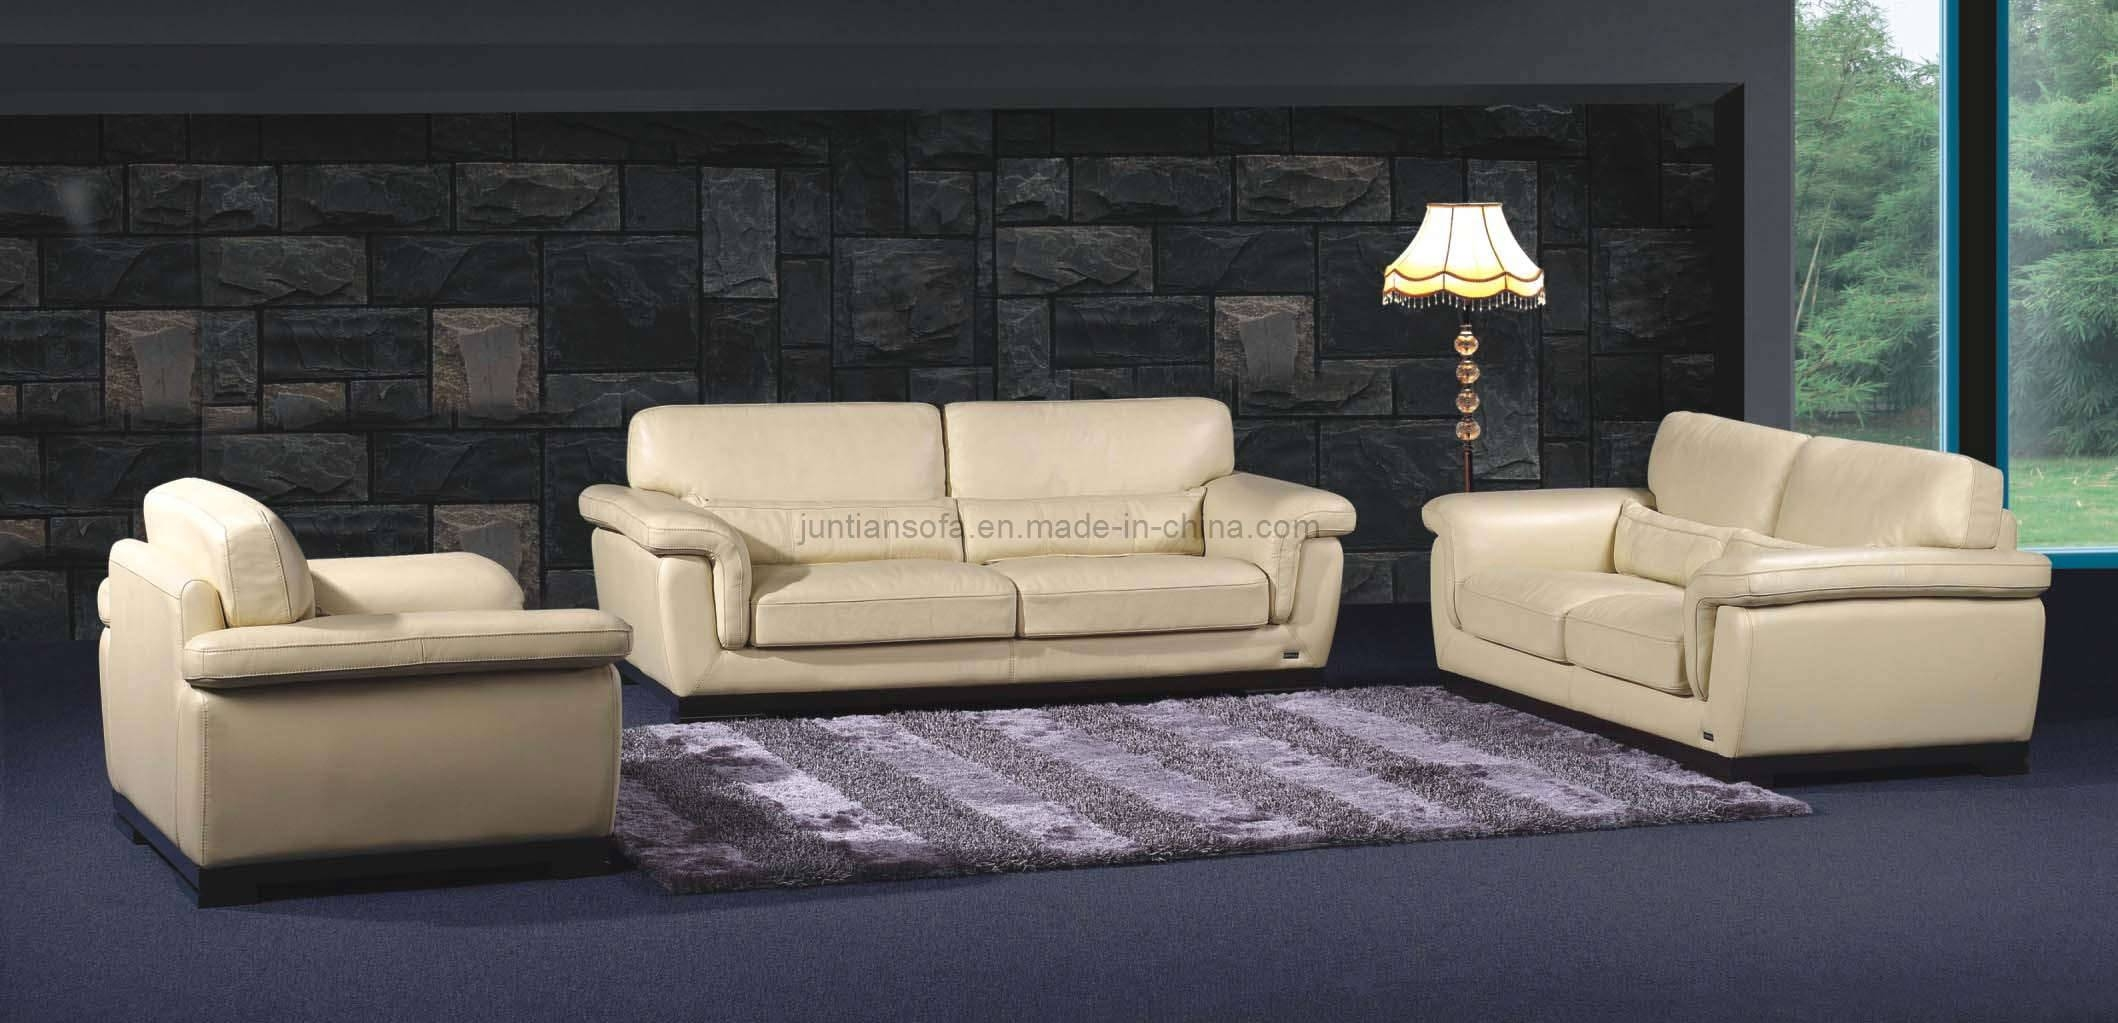 Sofas Center : Amazing High Quality Sectional Sofa Pictures throughout Quality Sectional Sofa (Image 20 of 30)